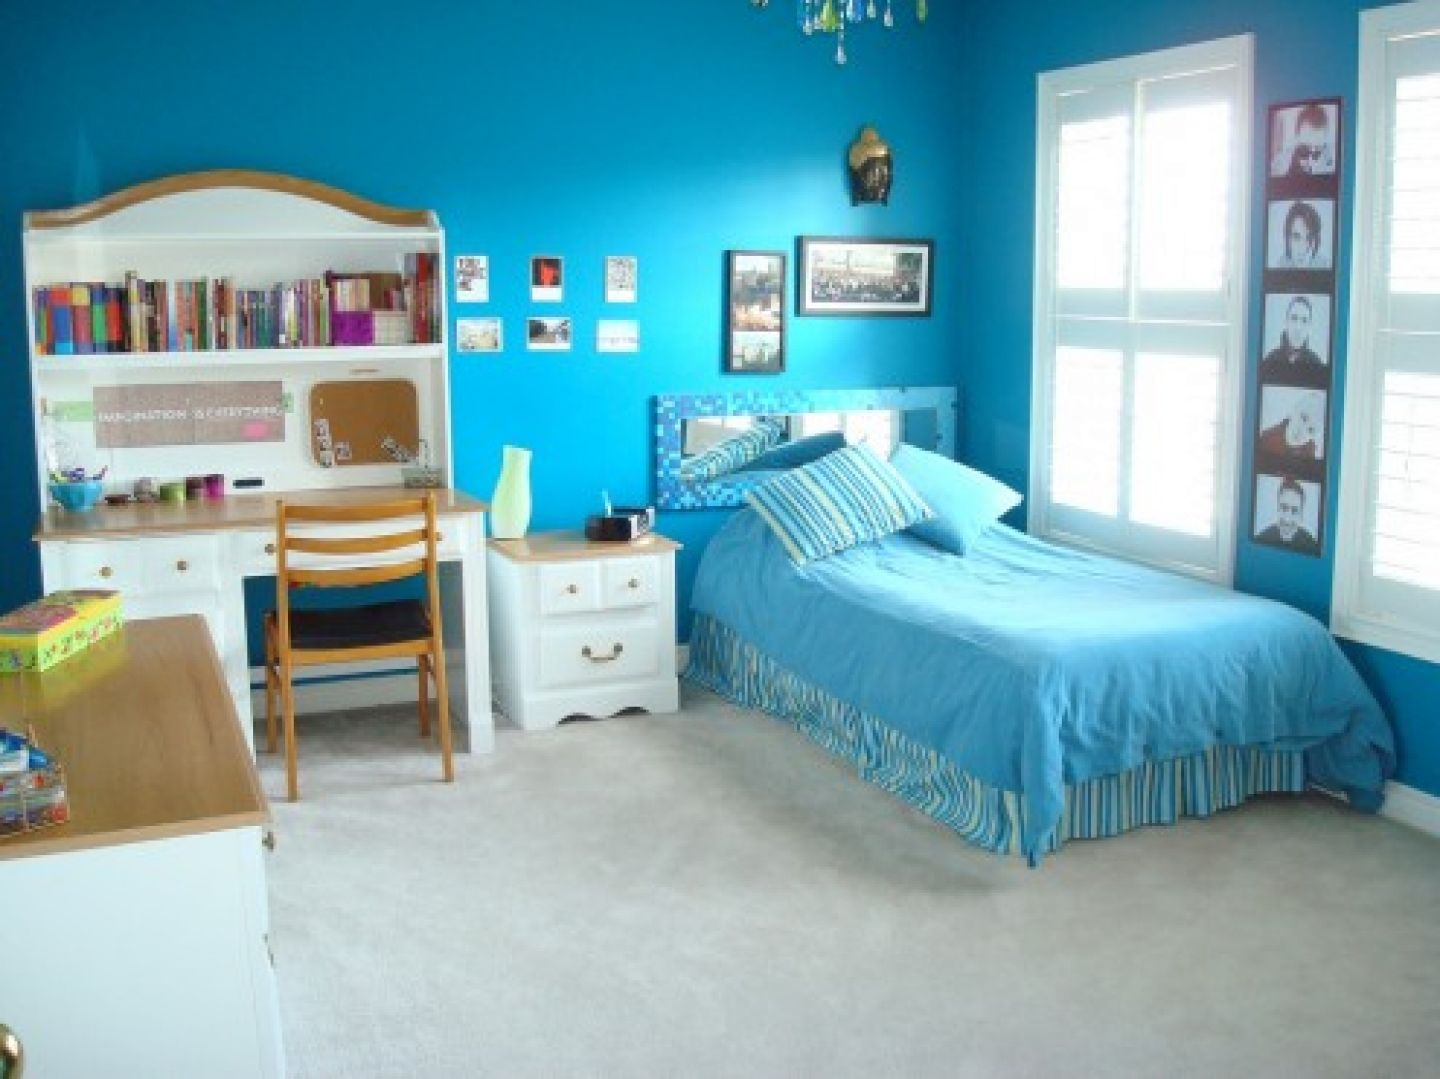 Bedroom wall decorating ideas blue - Awesome Teen Girl Bedroom Decorating Ideas With Blue Bedding